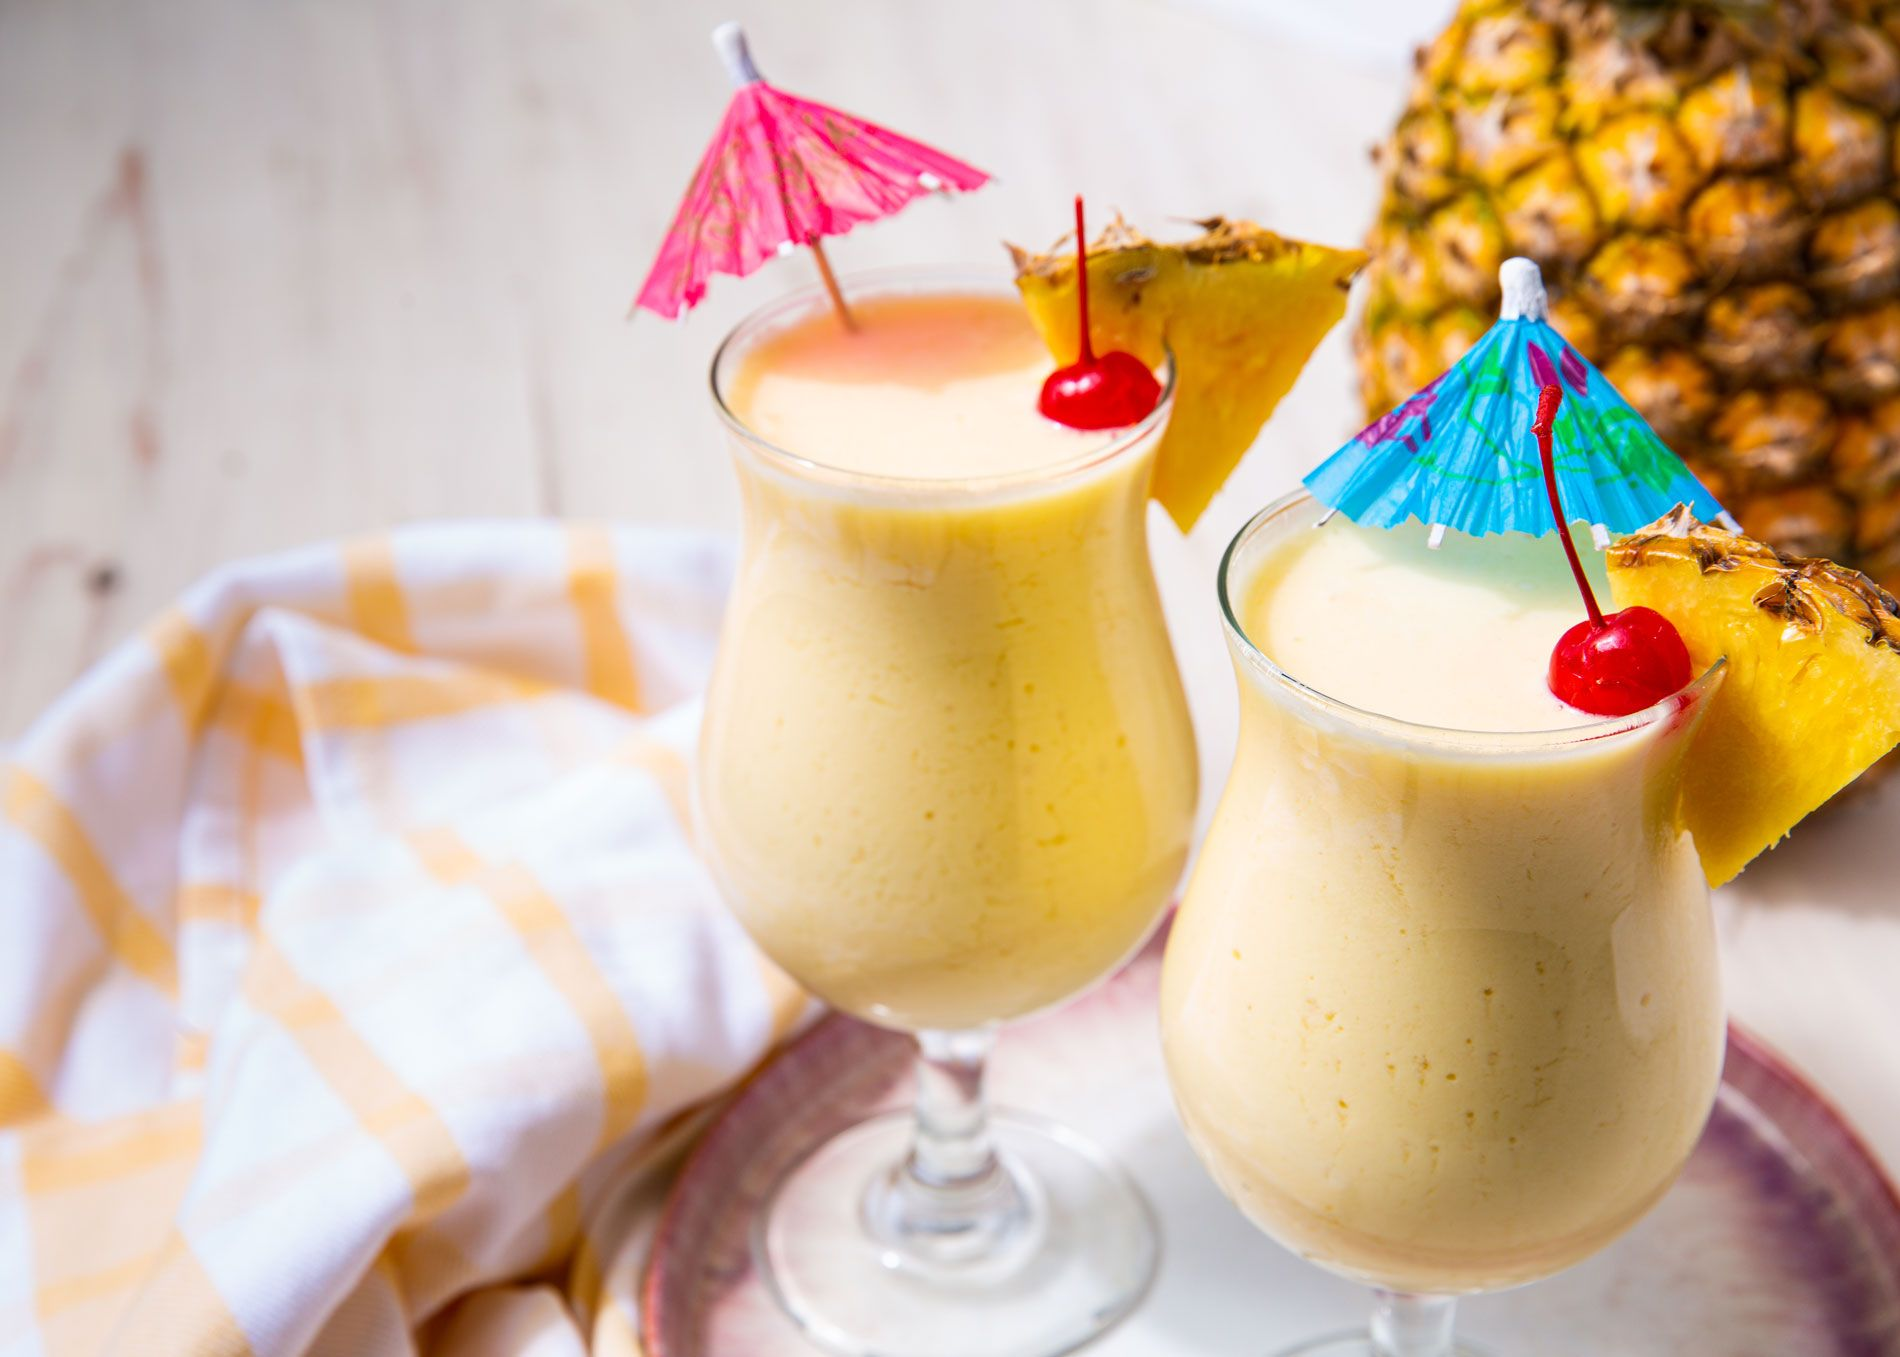 Best Virgin Piña Colada - How to Make Virgin Piña Coladas